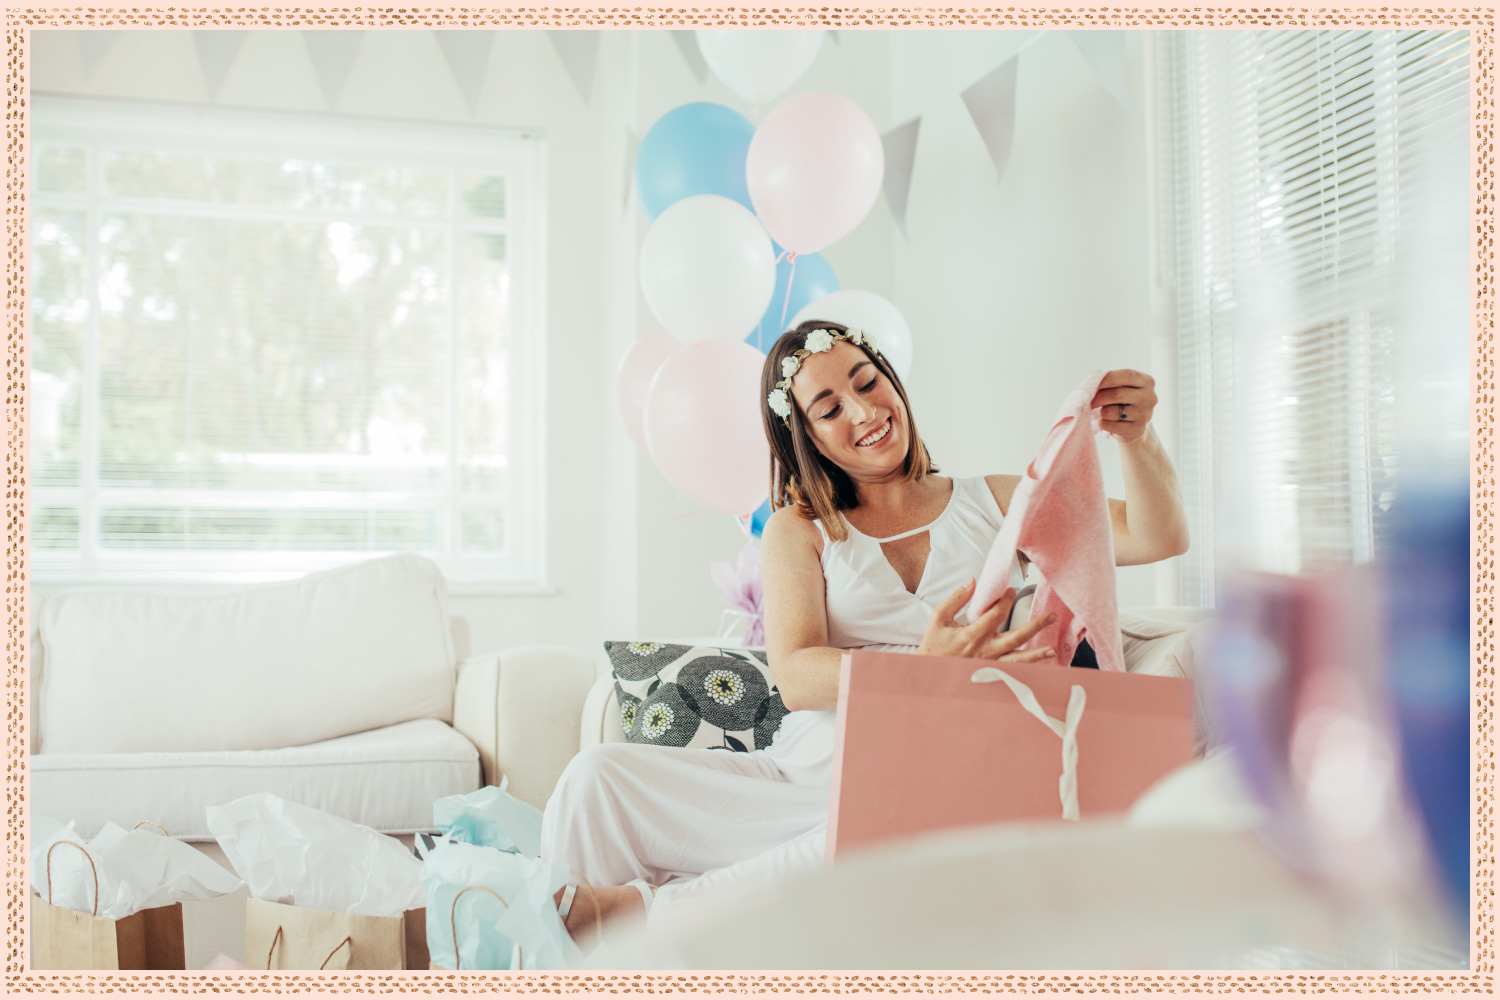 young woman with flowercrown unpacking gifts after baby shower